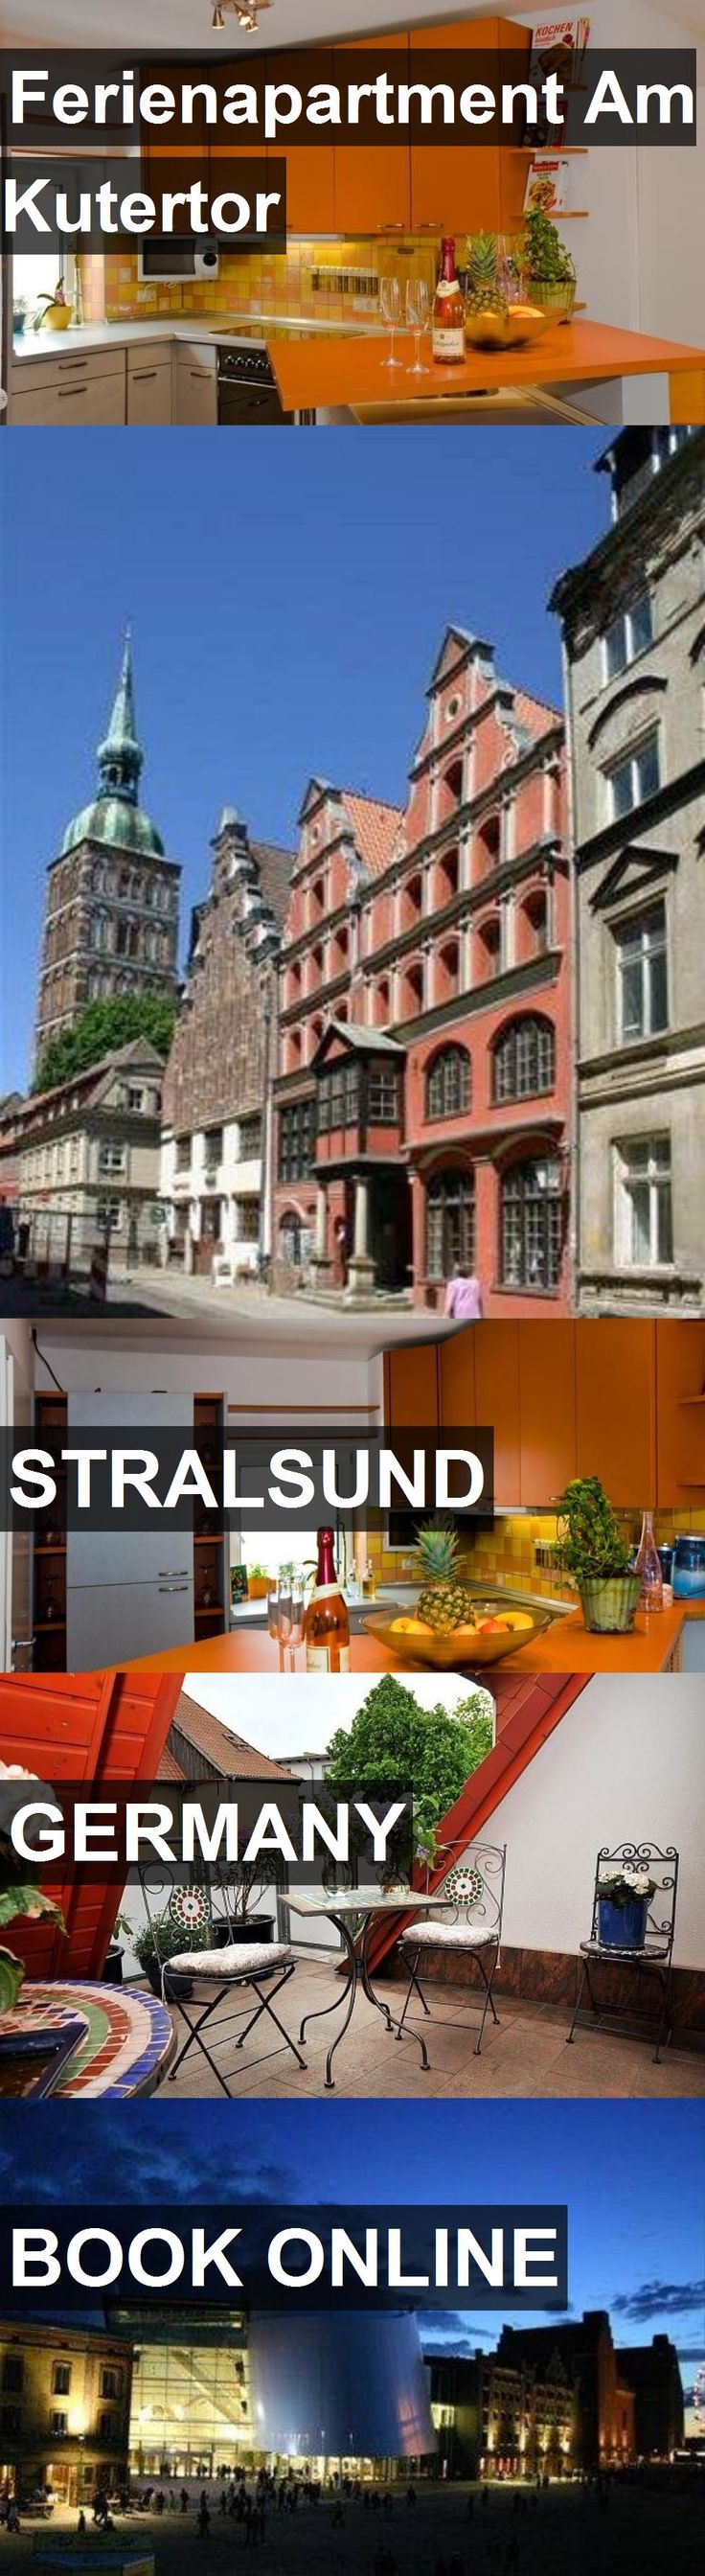 Hotel Ferienapartment Am Kutertor in Stralsund, Germany. For more information, photos, reviews and best prices please follow the link. #Germany #Stralsund #FerienapartmentAmKutertor #hotel #travel #vacation